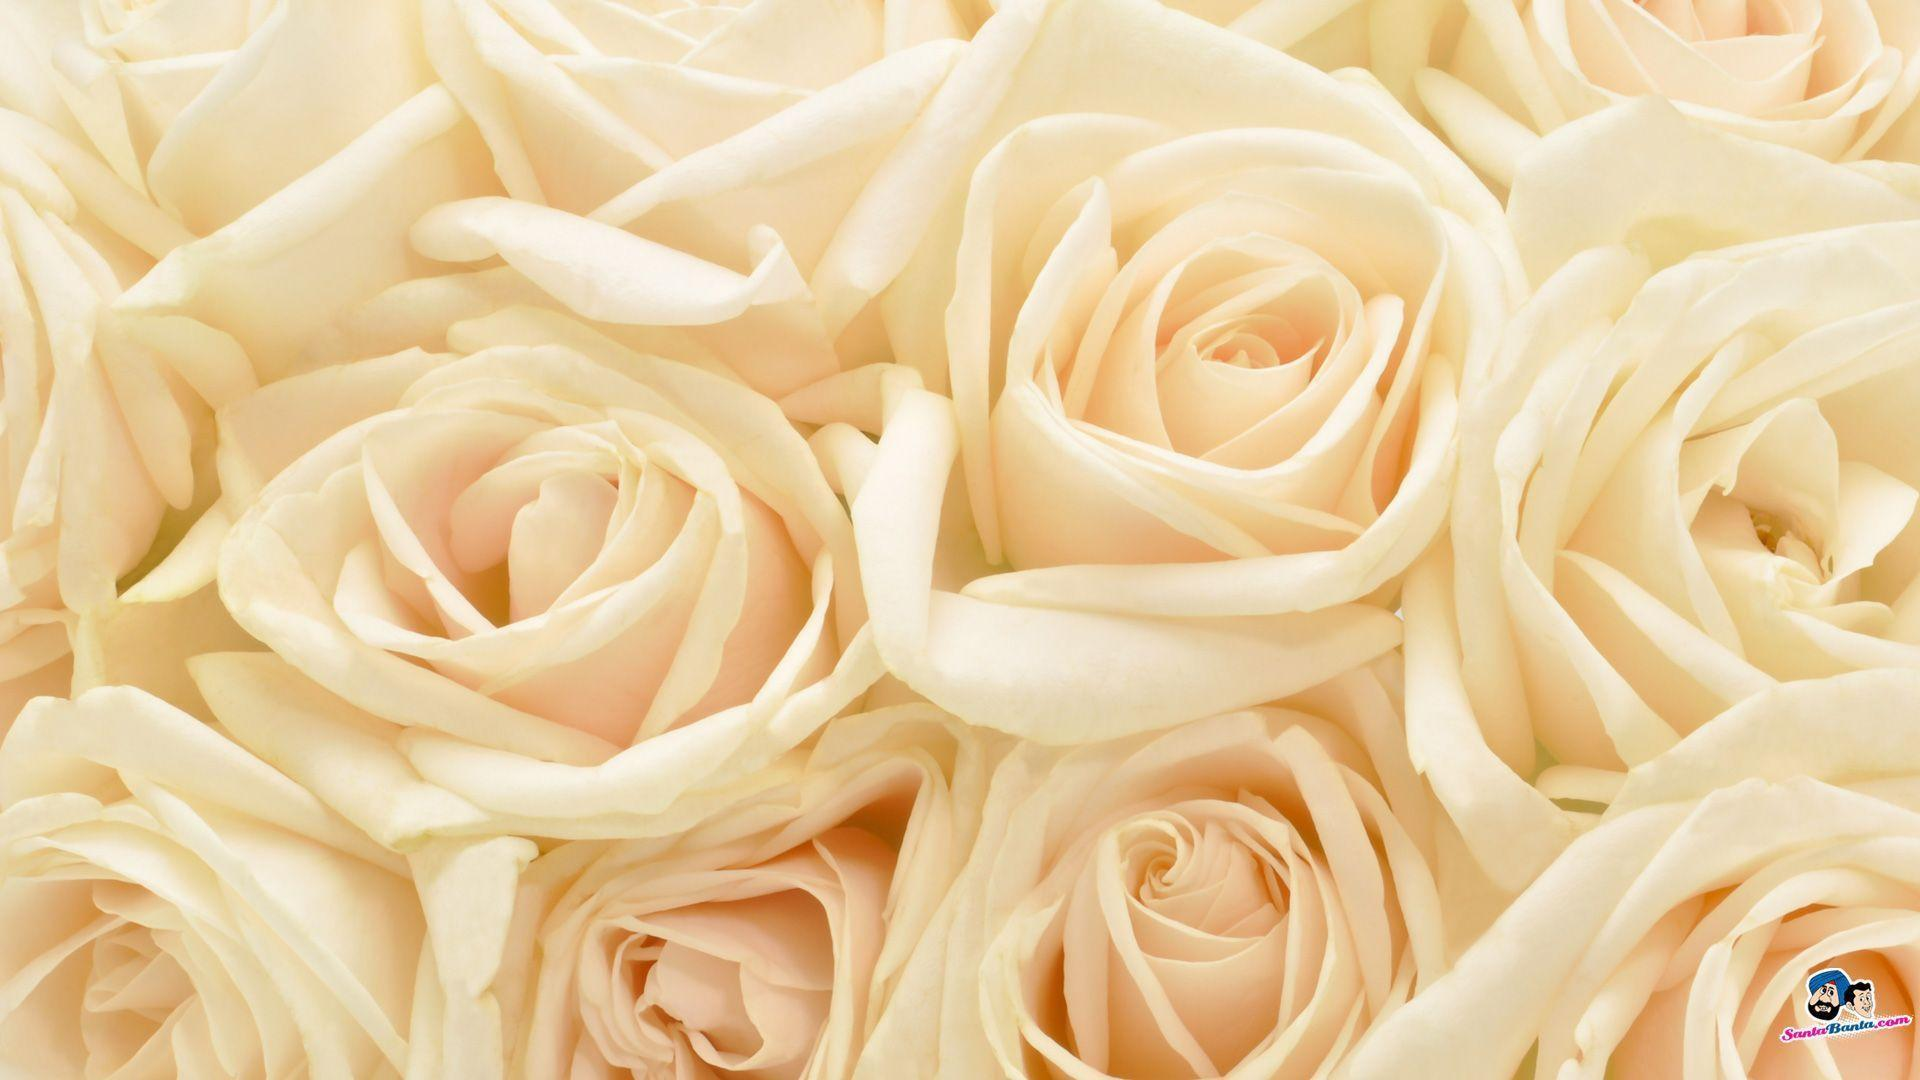 white rose backgrounds wallpapers - photo #4